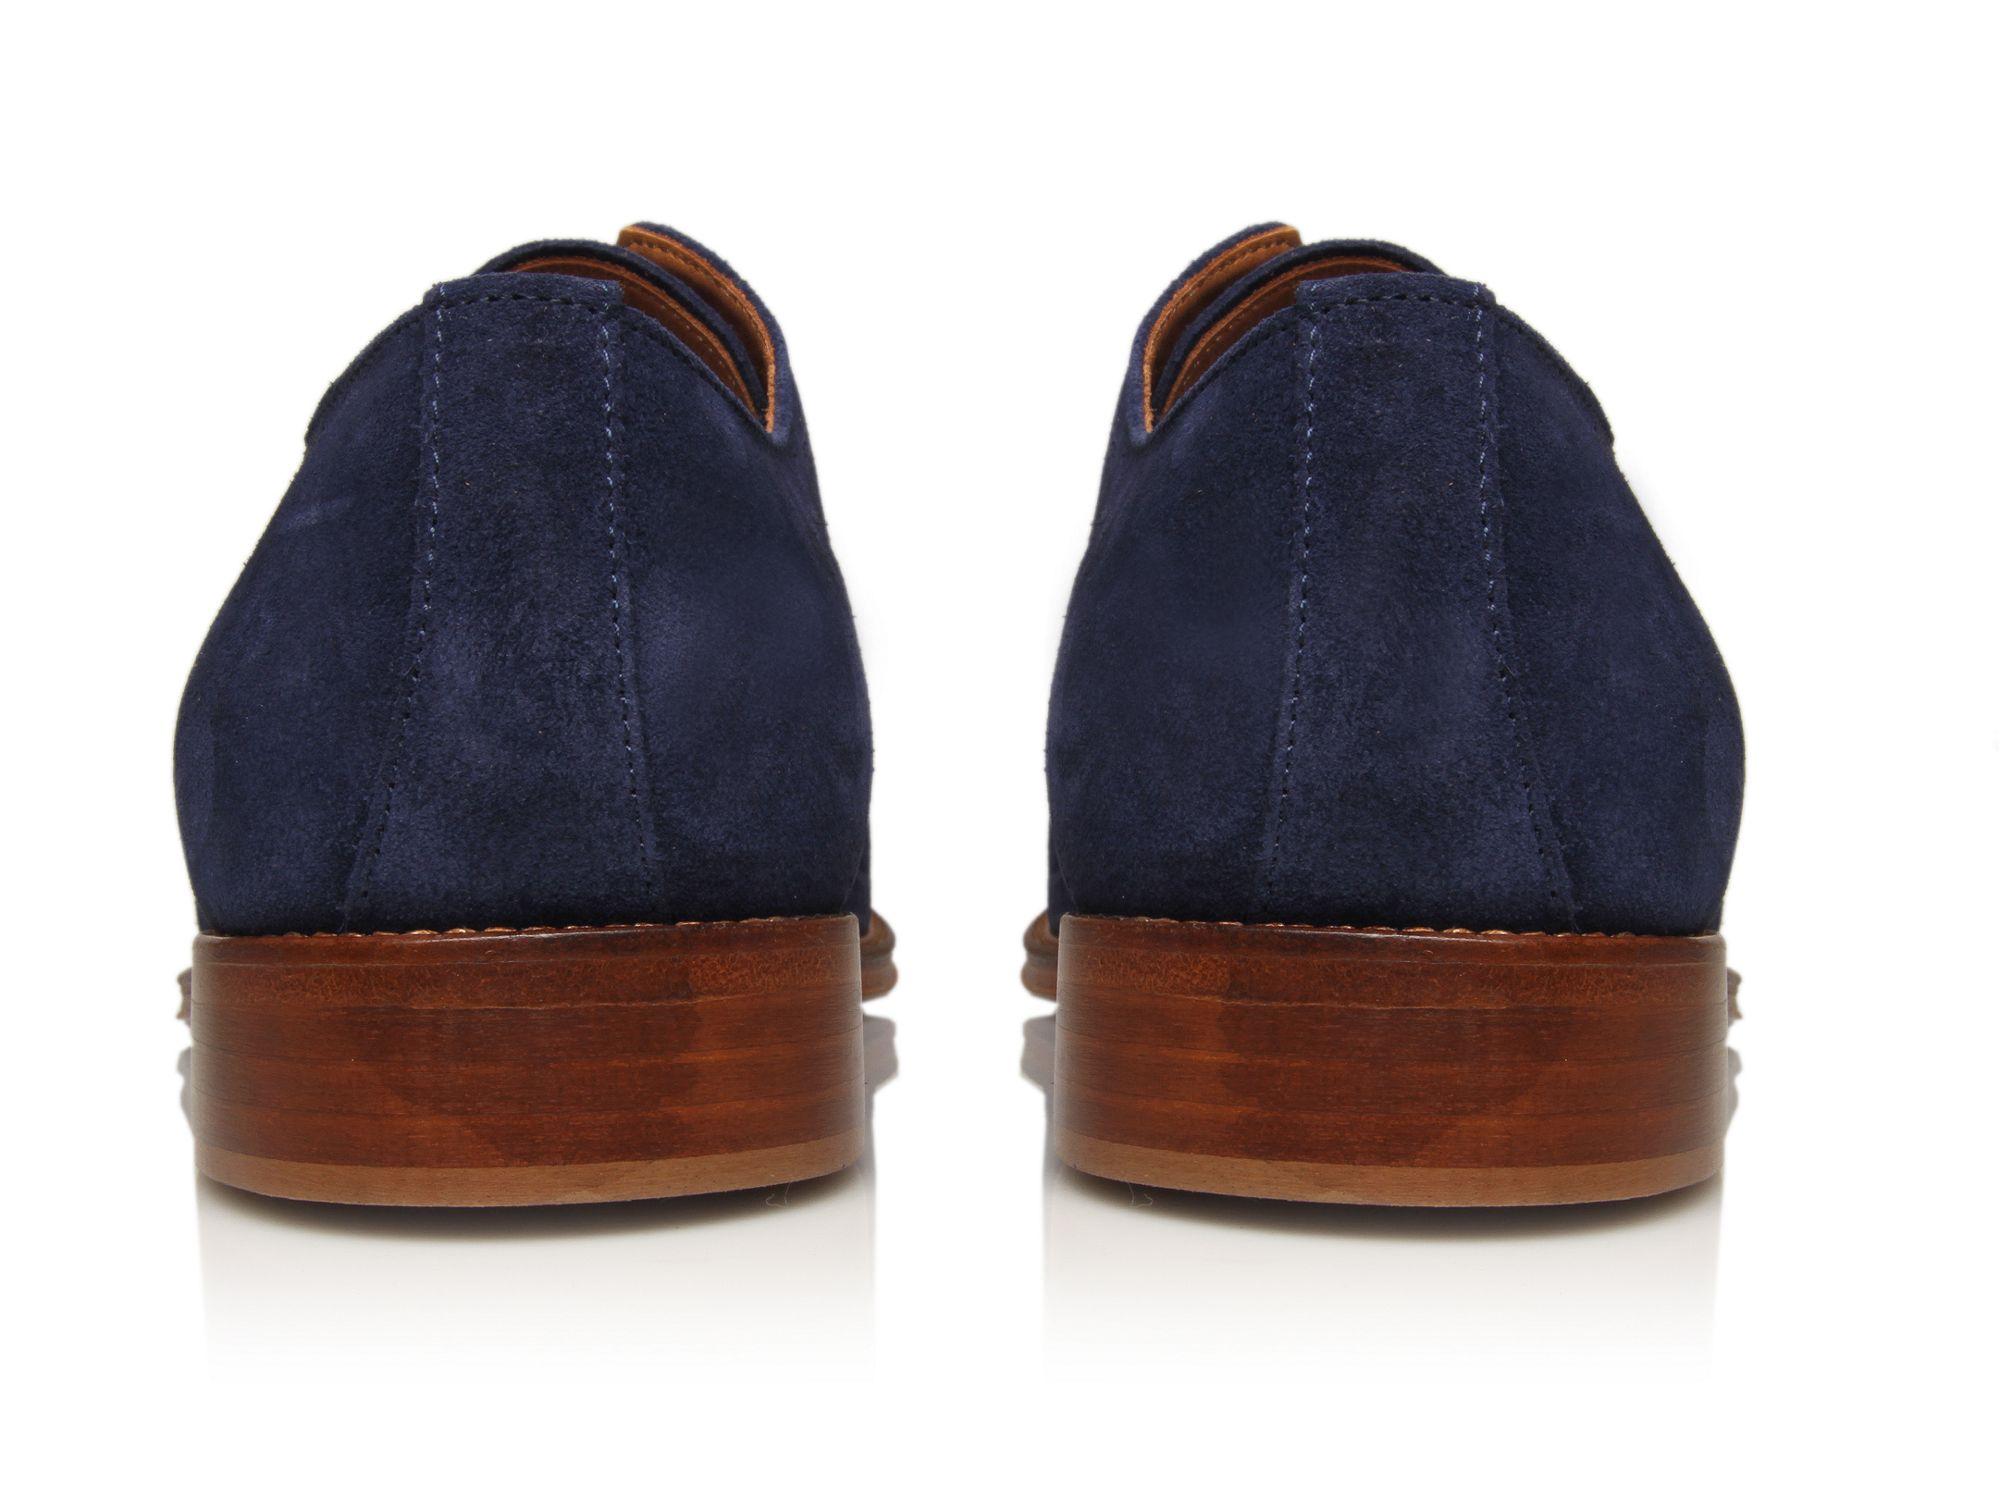 Kurt Geiger Noah Laceups in Navy (Blue) for Men